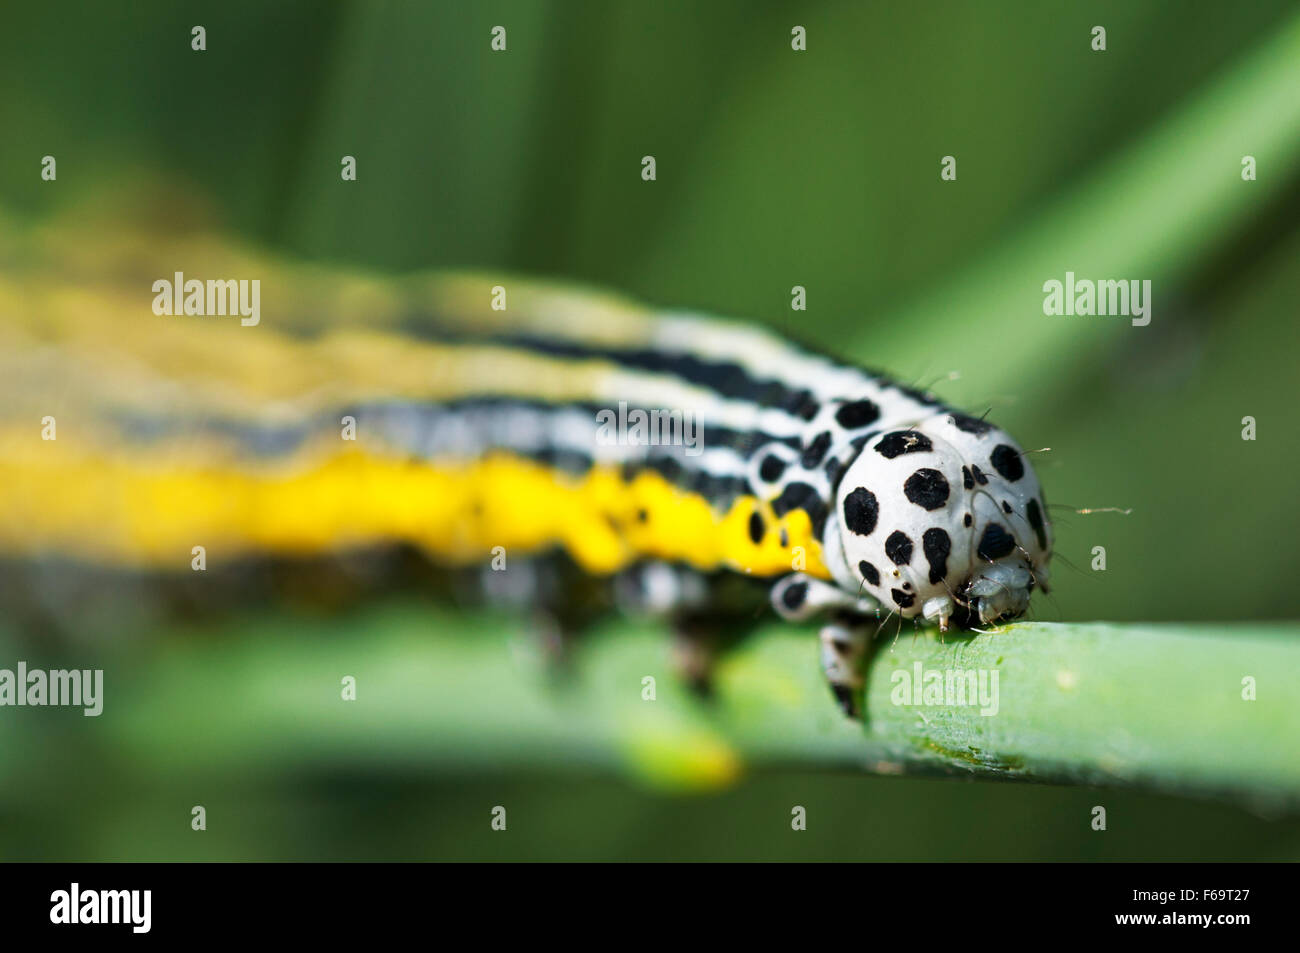 Caterpillar on the stem of a plant - Stock Image